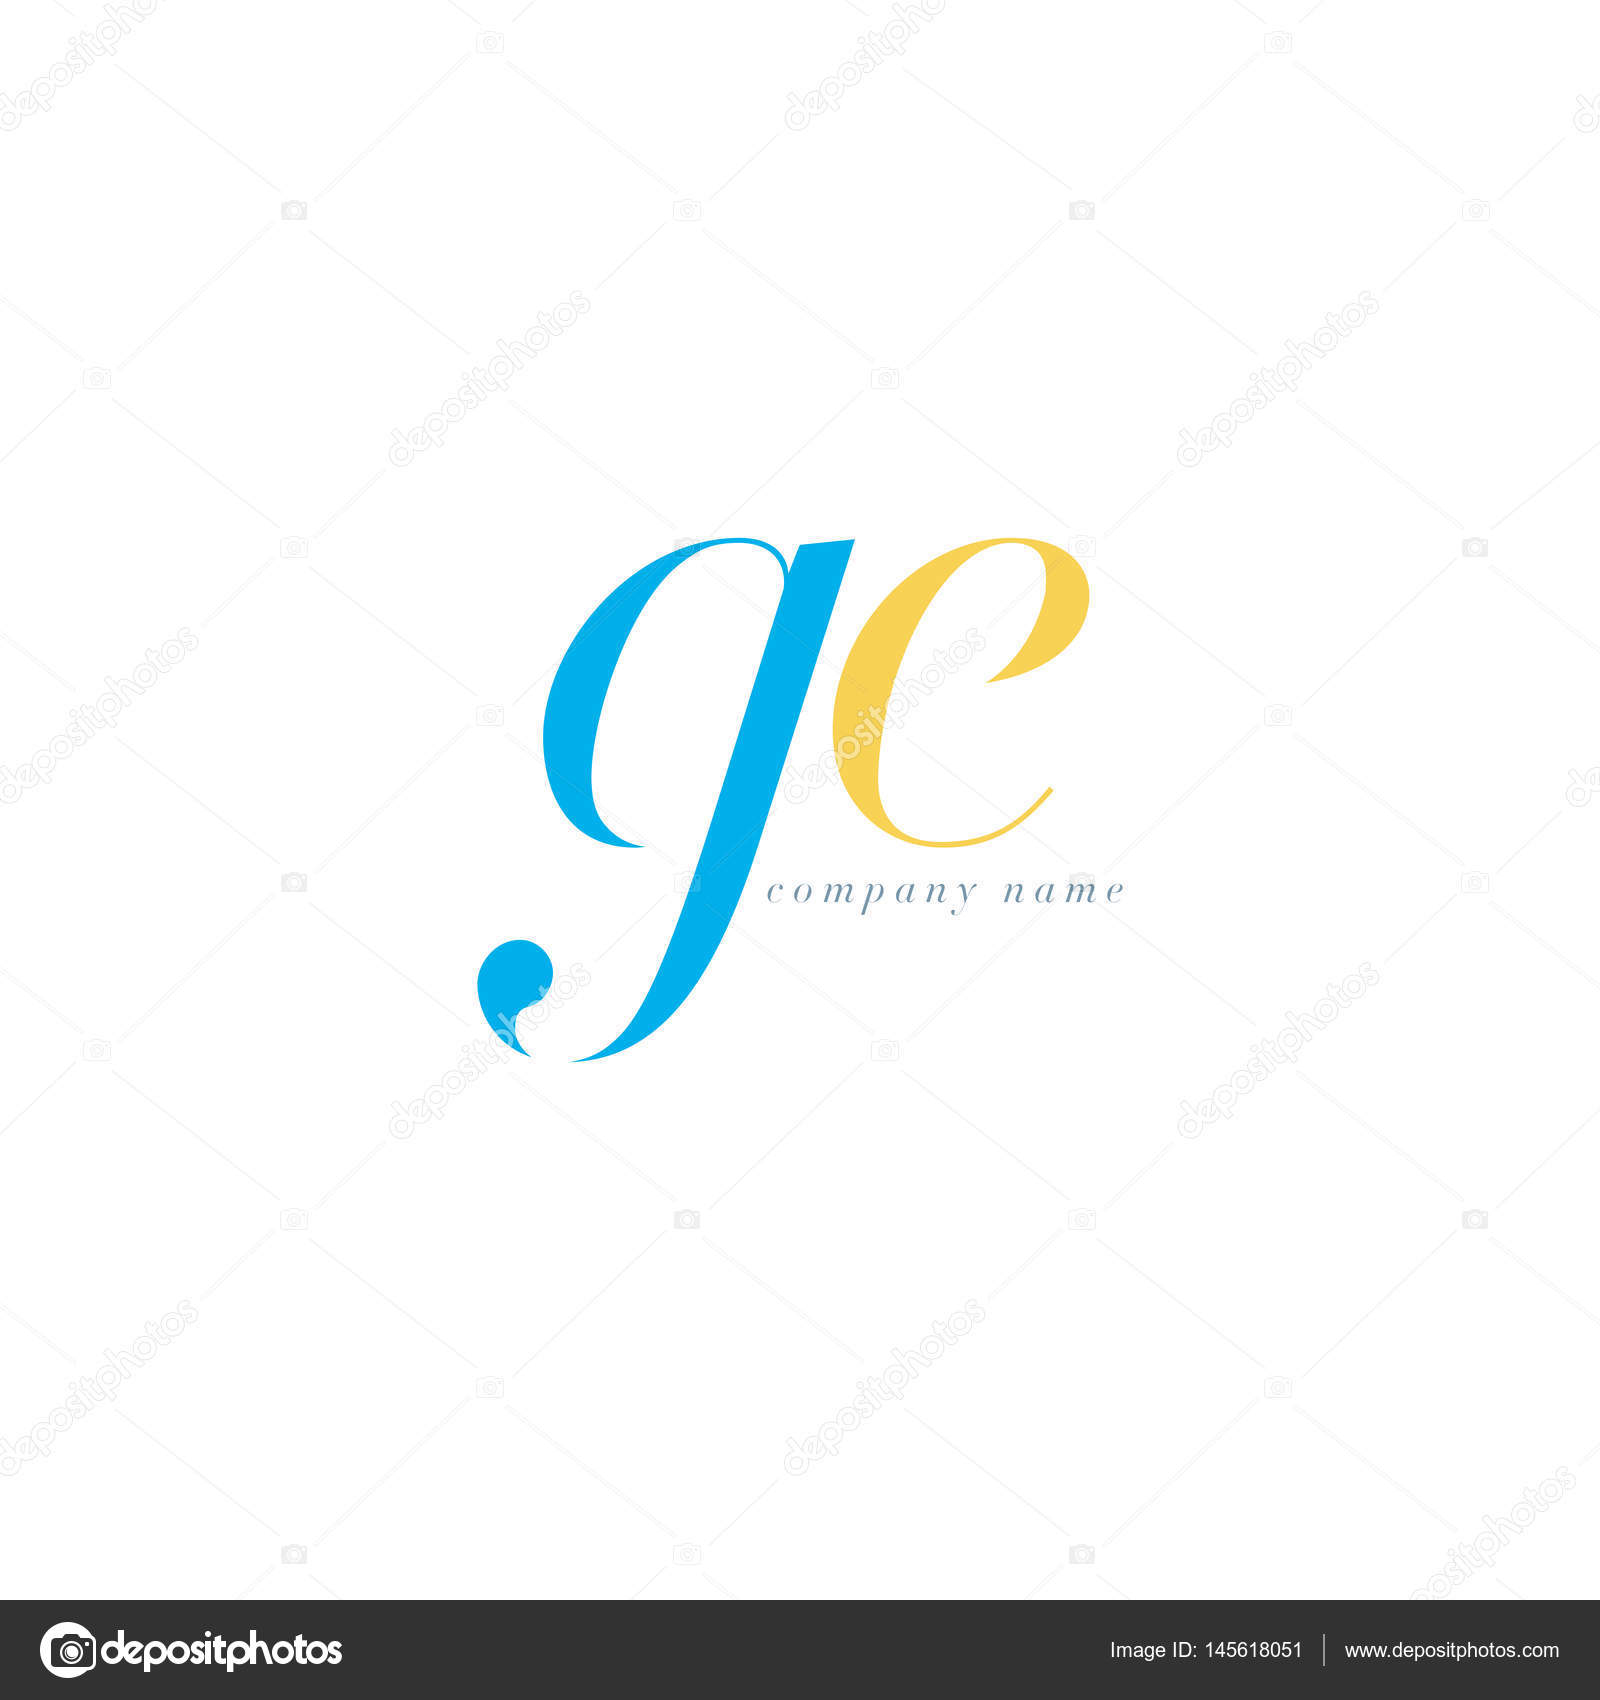 Ge letters logo template stock vector brainbistro 145618051 ge letters logo template stock vector biocorpaavc Gallery